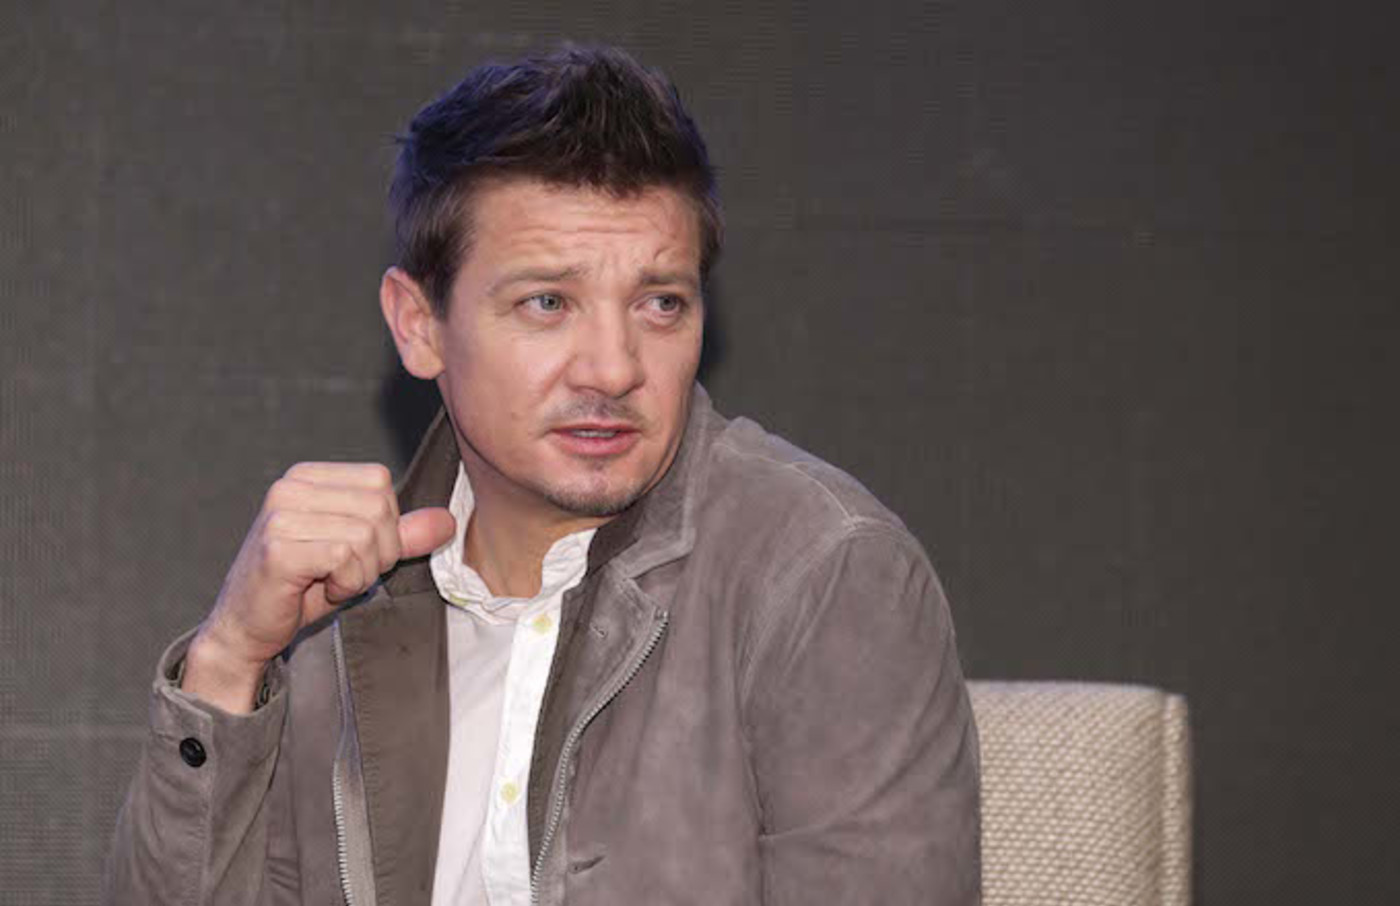 Jeremy Renner attends the 'Avengers: Endgame' Asia Press Conference.